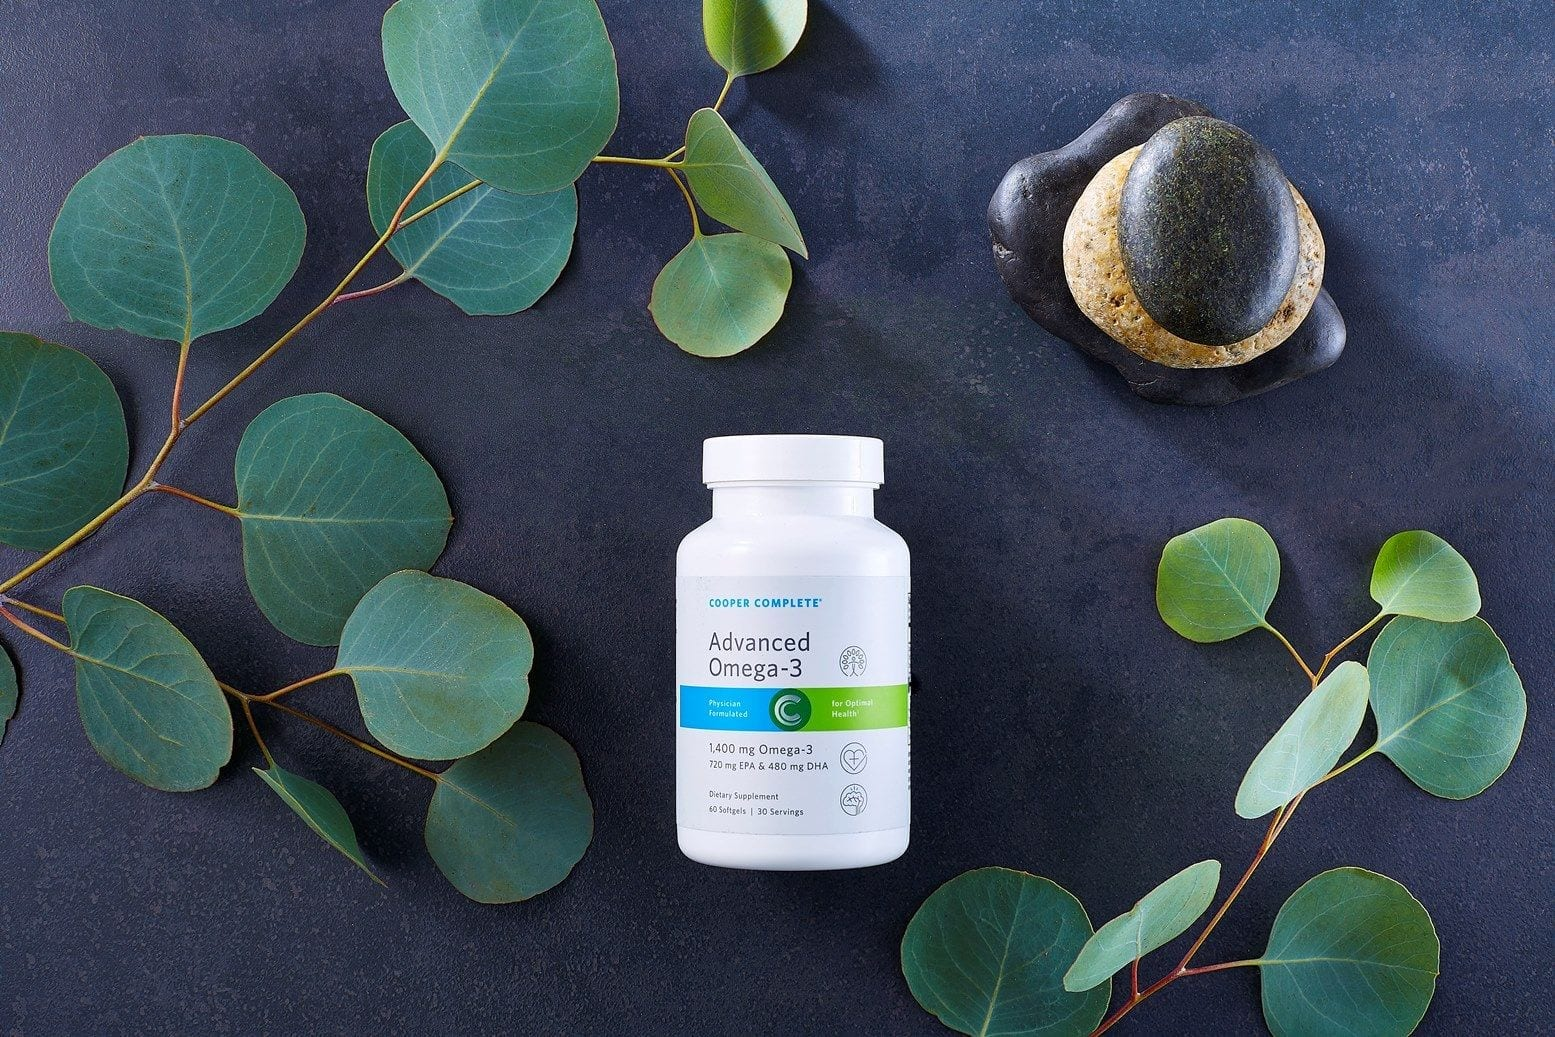 Cooper Complete Advanced Omega3 dietary supplement Bottle on a dark slate surface with green branches and several small stacked rocks